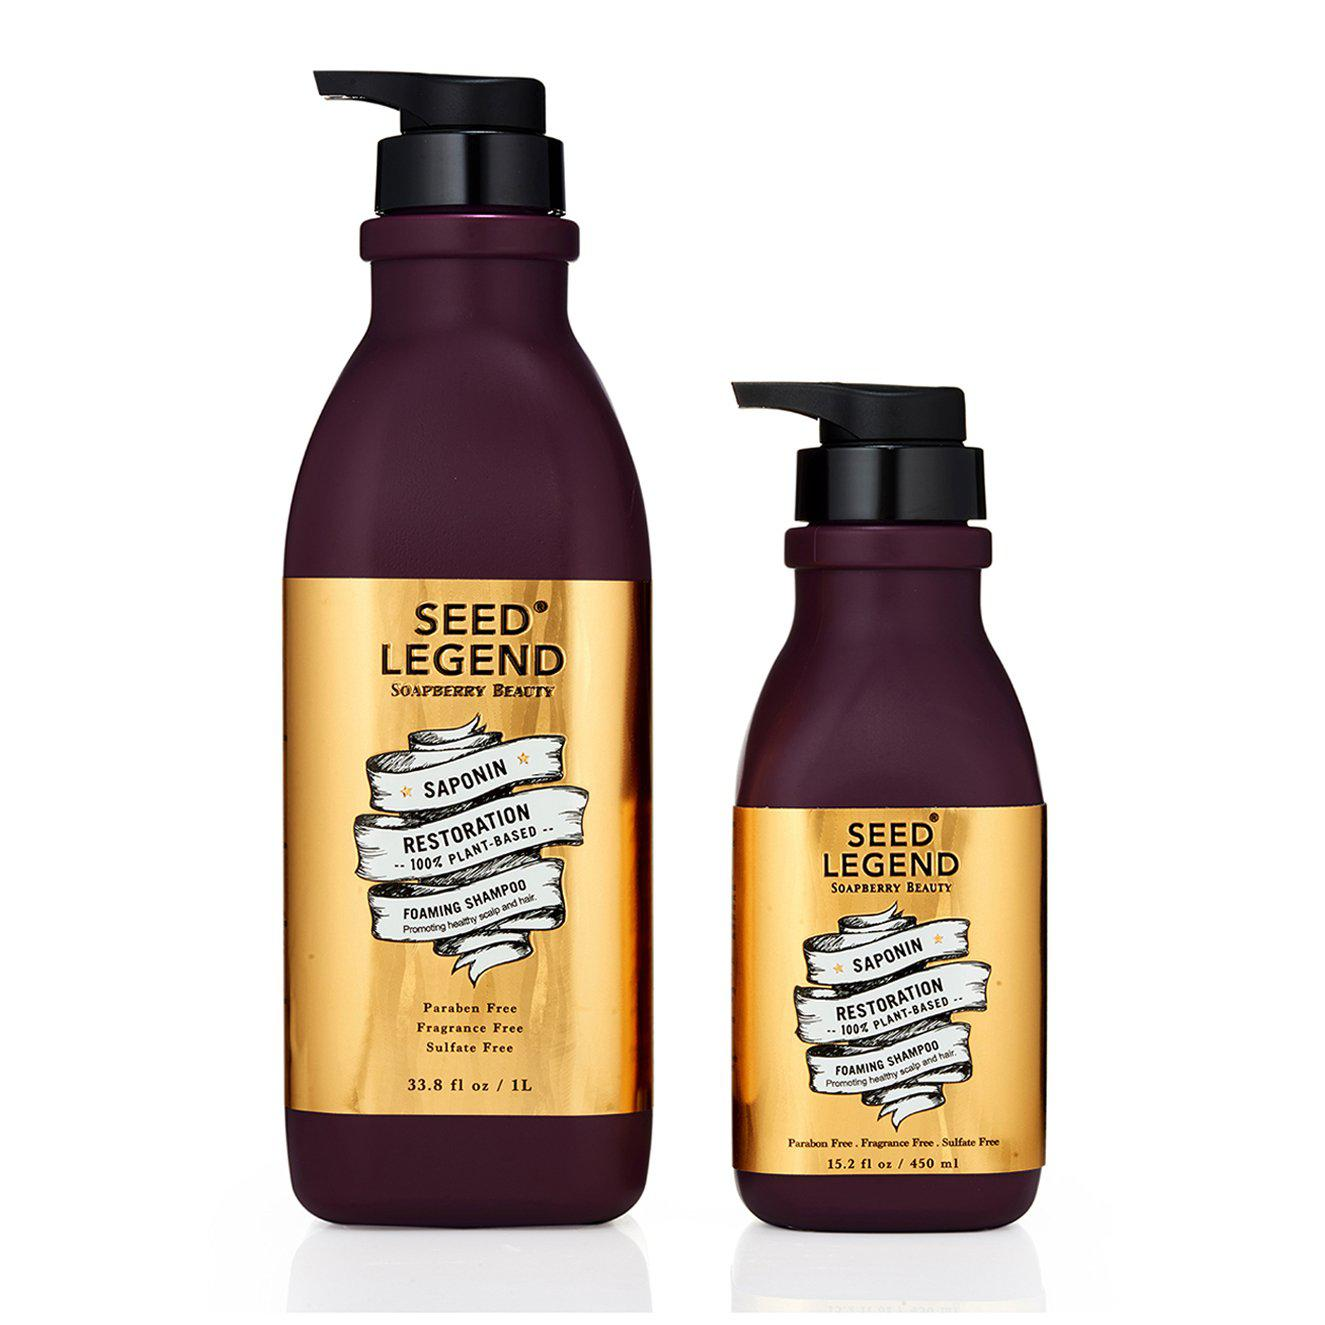 Soapberry Foaming Shampoo - Scalp Detox and Hair Growth - Seed Legend